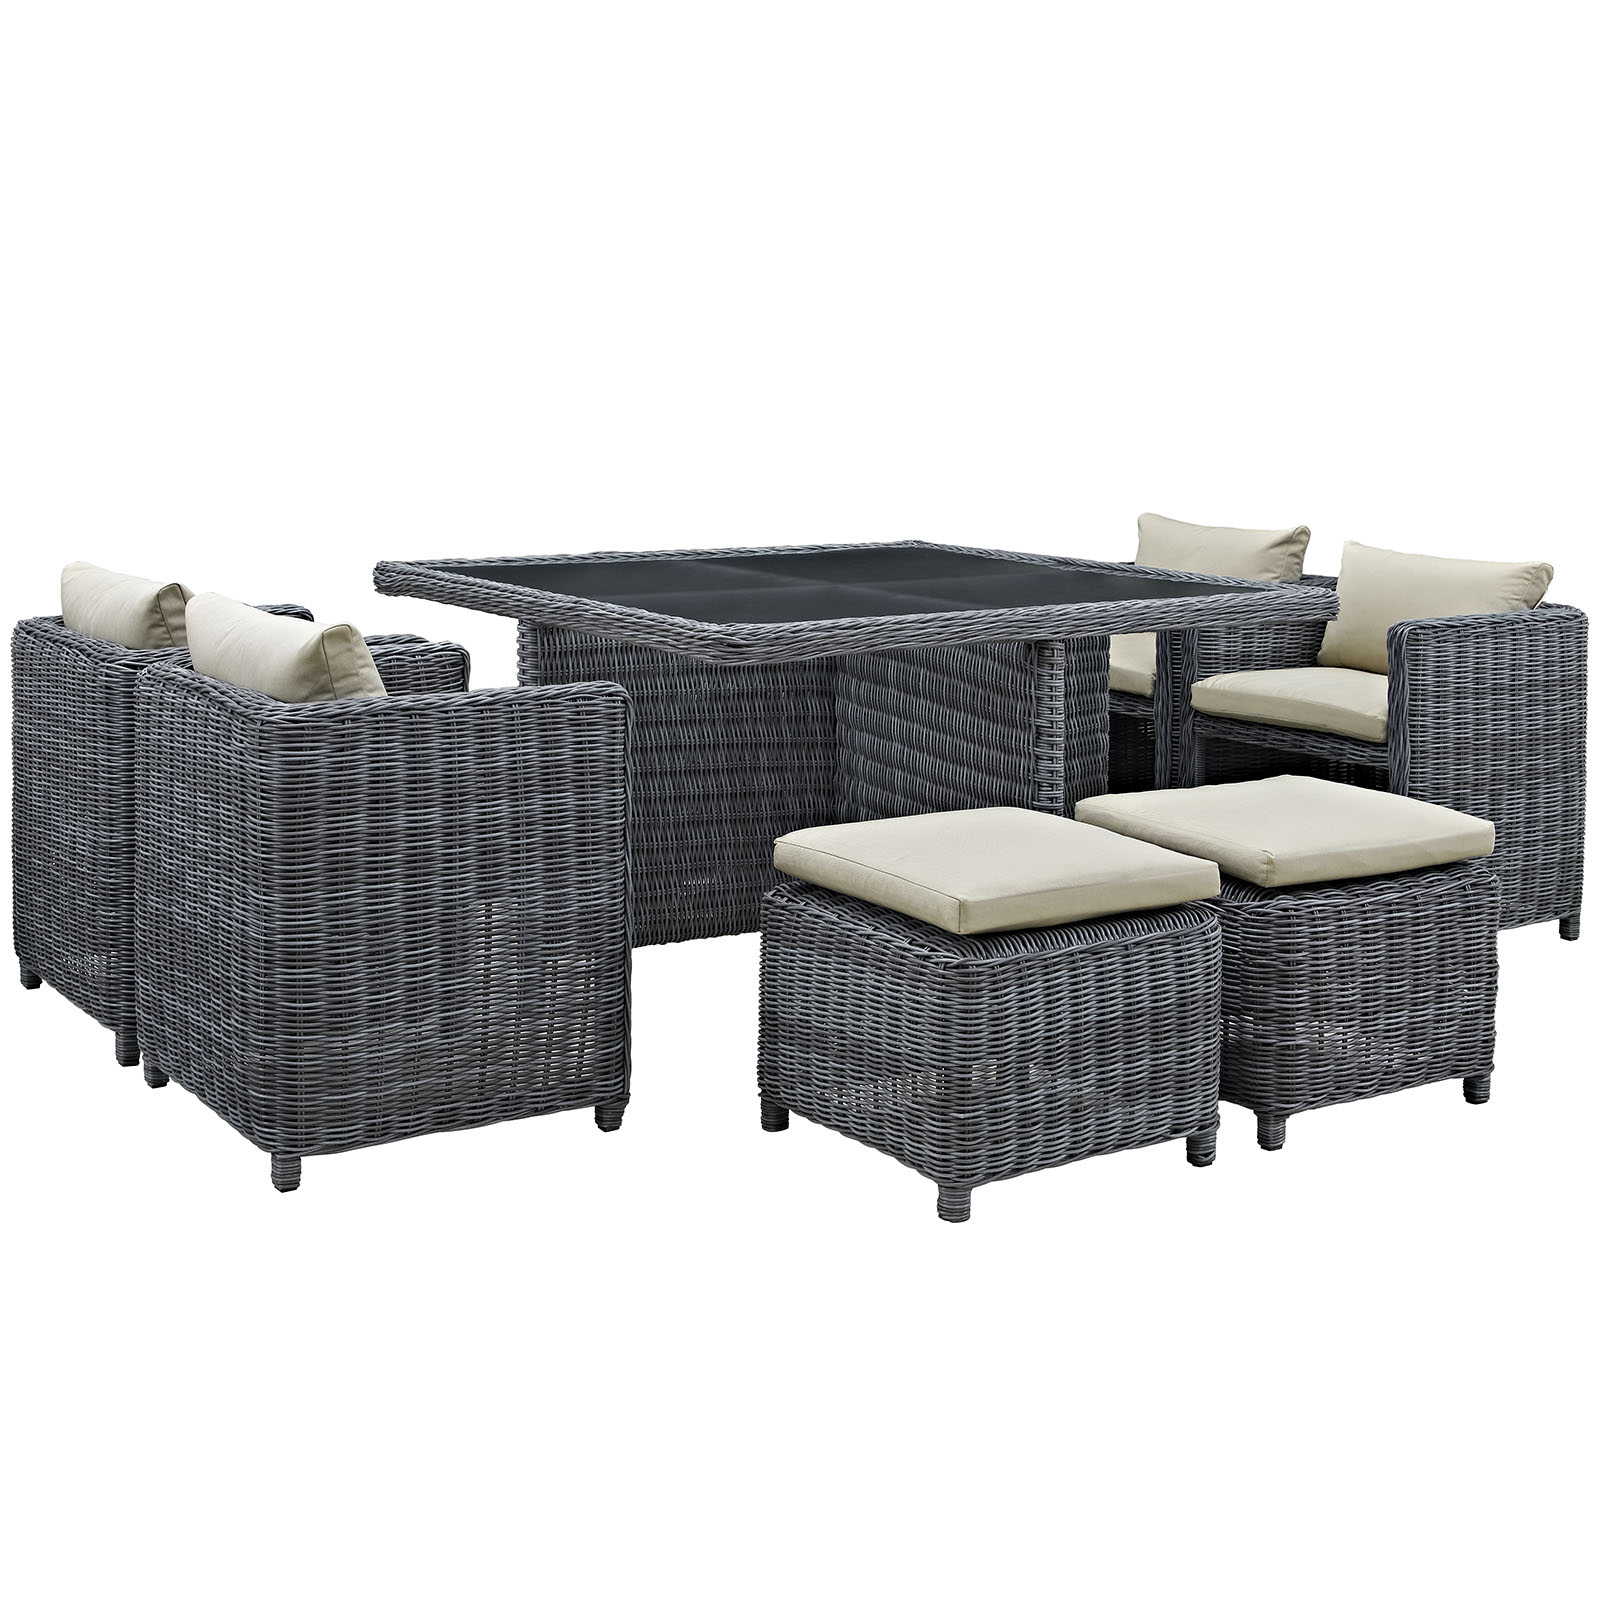 Modern Contemporary Nine PCS Outdoor Patio Dining Set, Beige, Fabric, Synthetic Rattan